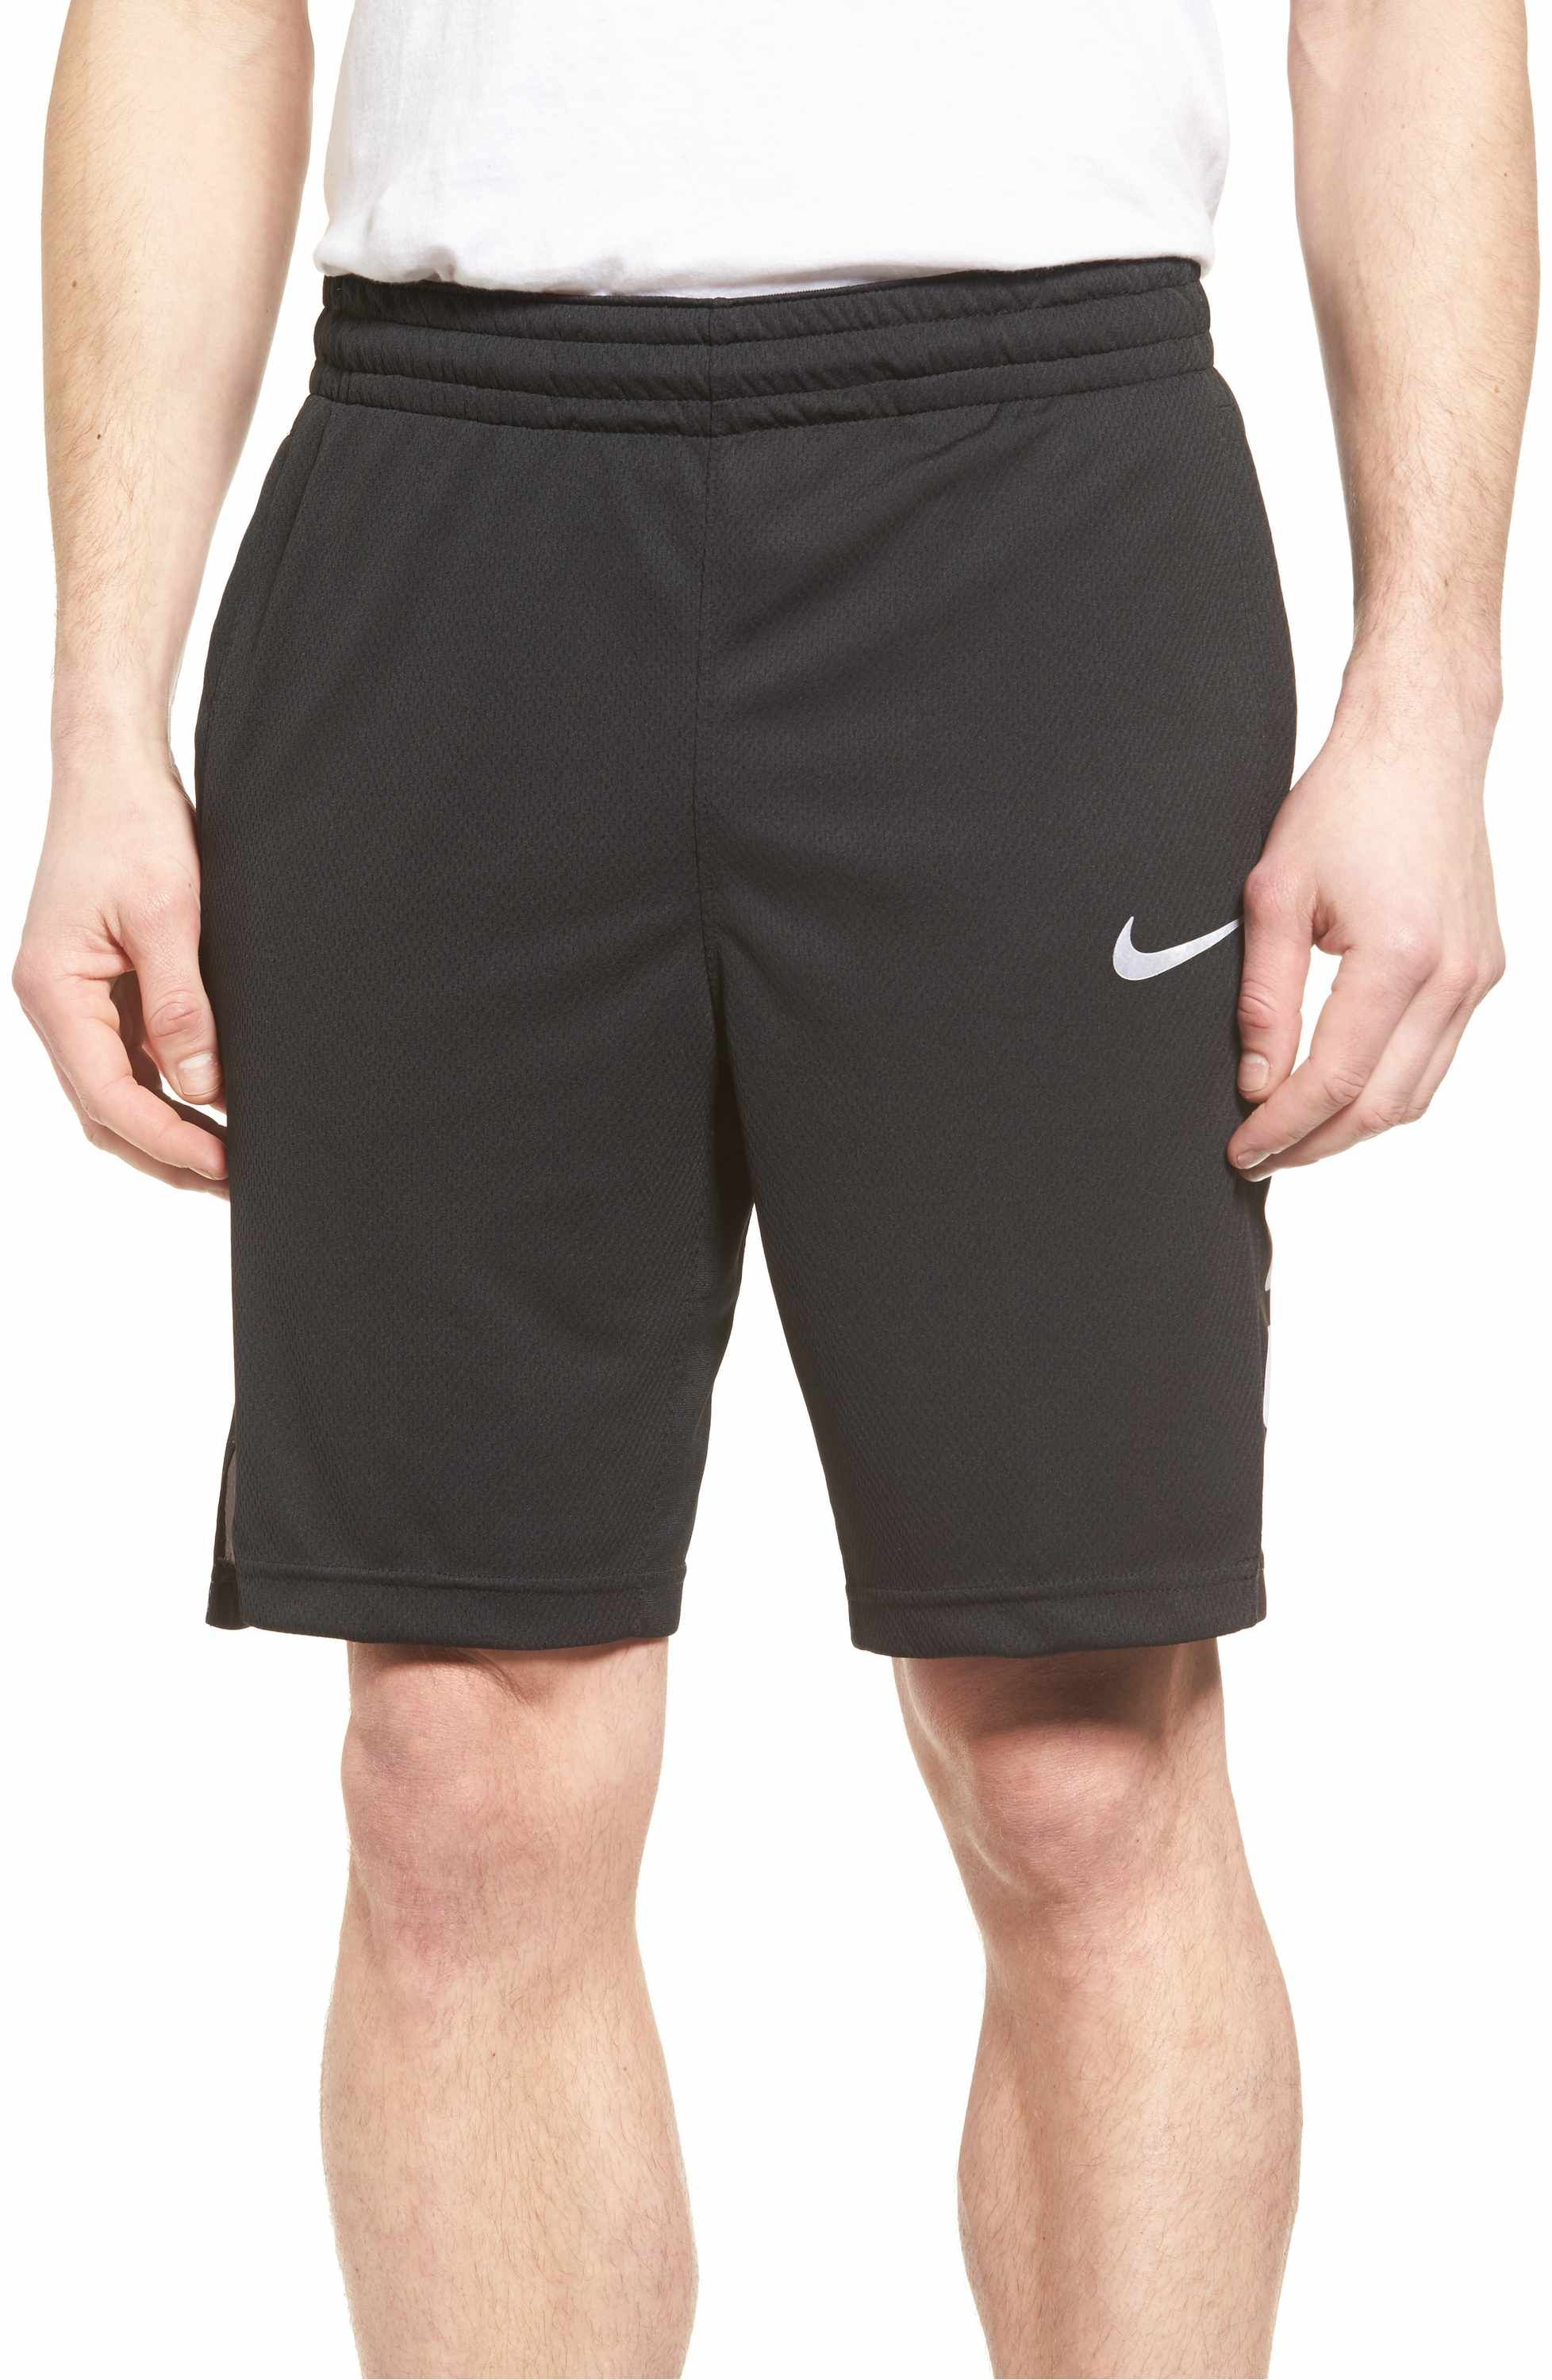 Nike Elite Stripe Basketball Shorts (Regular Retail Price: $45.00)